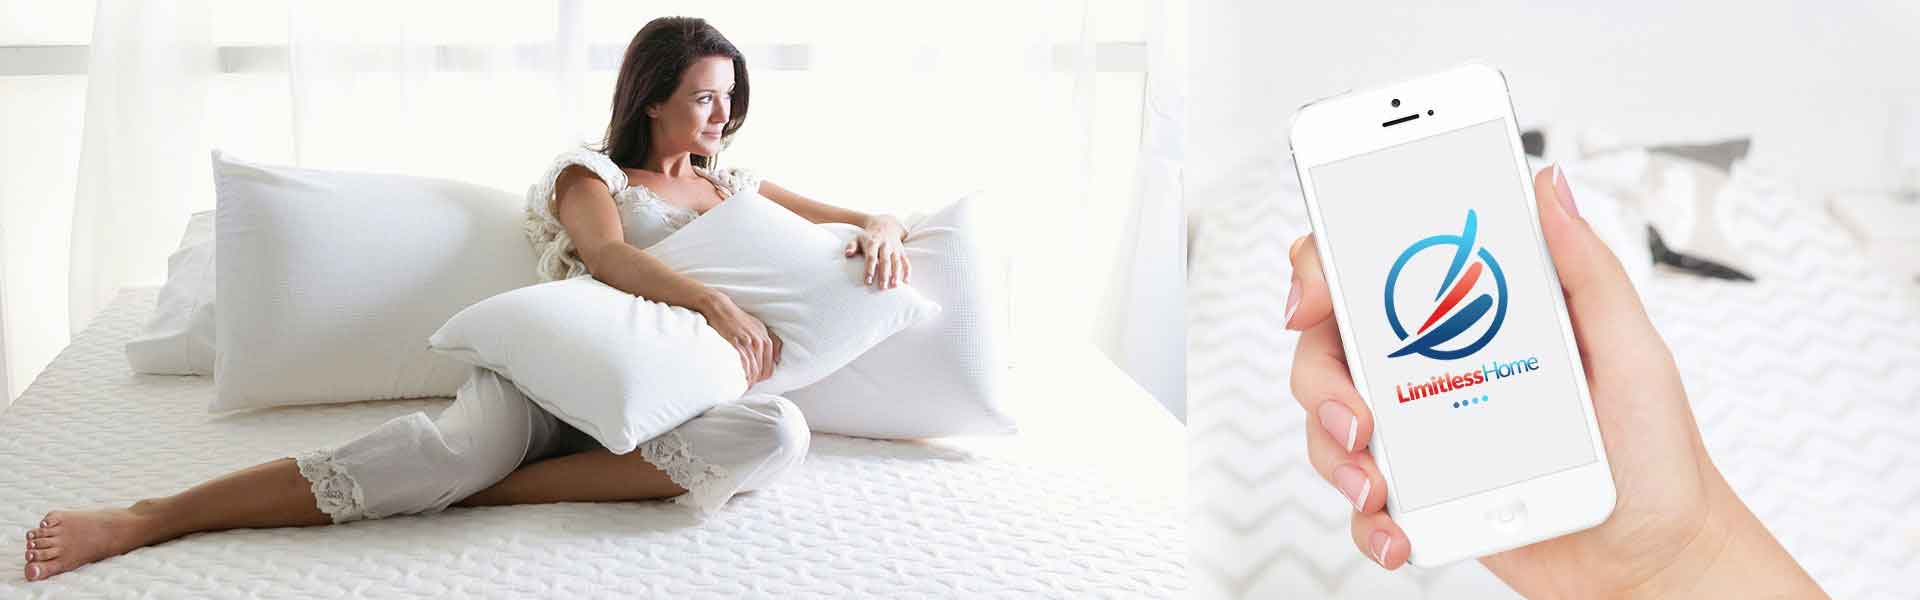 <h3>HAVE YOU HAD YOUR MATTRESS FOR MORE THAN 8 YEARS?</h3>